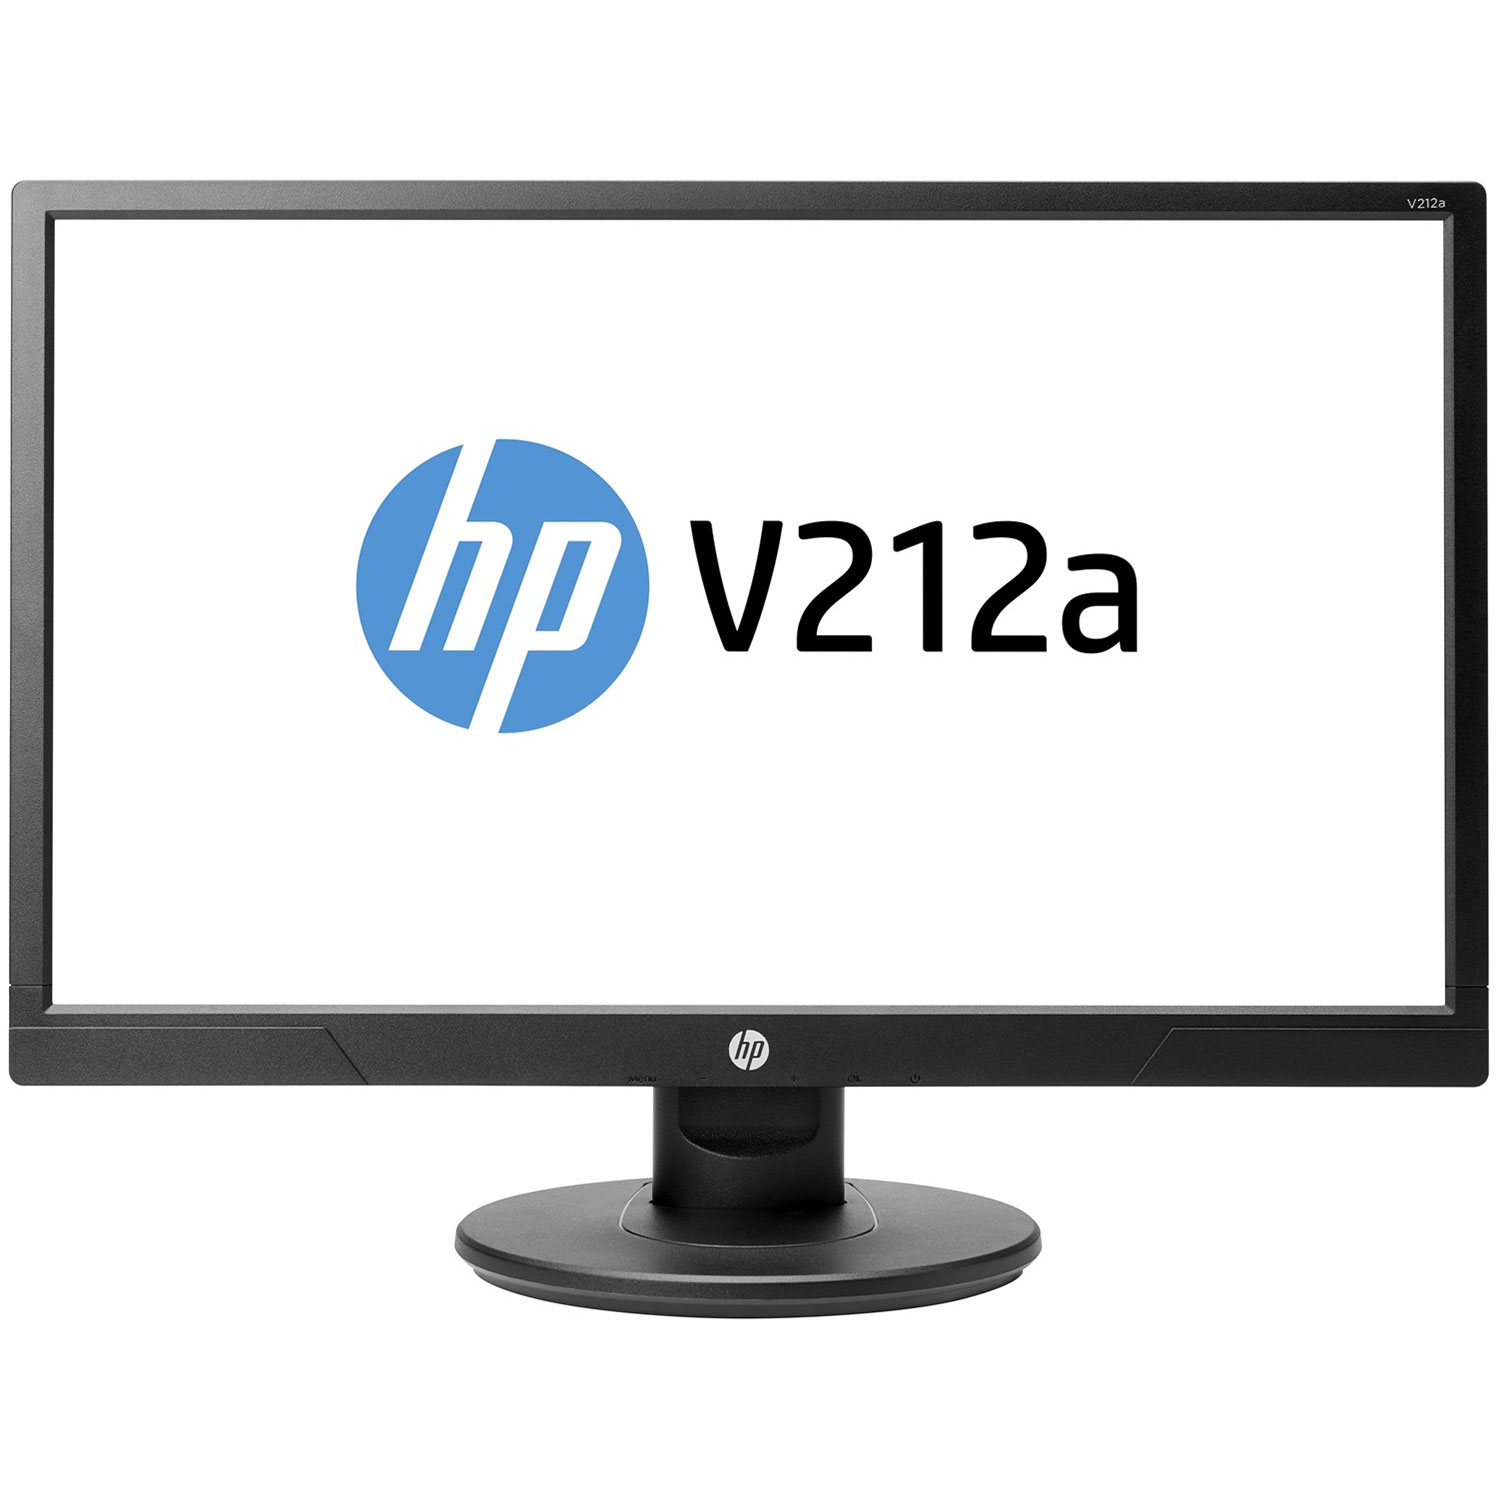 Hp 21 led v212a m6f38at abb achat vente ecran pc for Ecran pc large